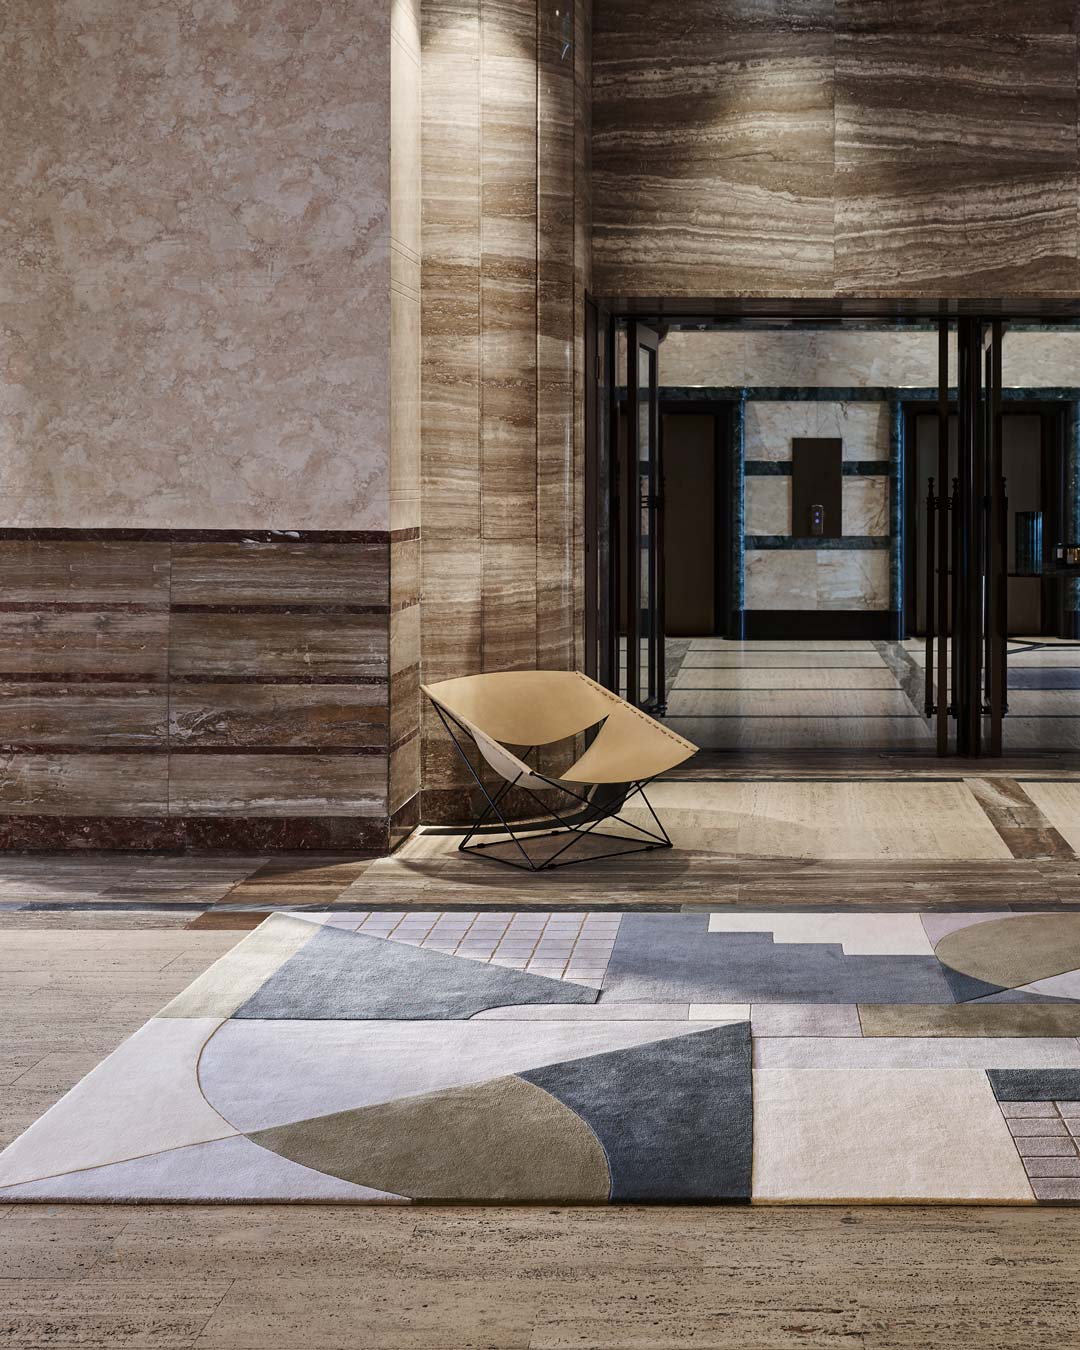 location shot of rateau rug by greg natale